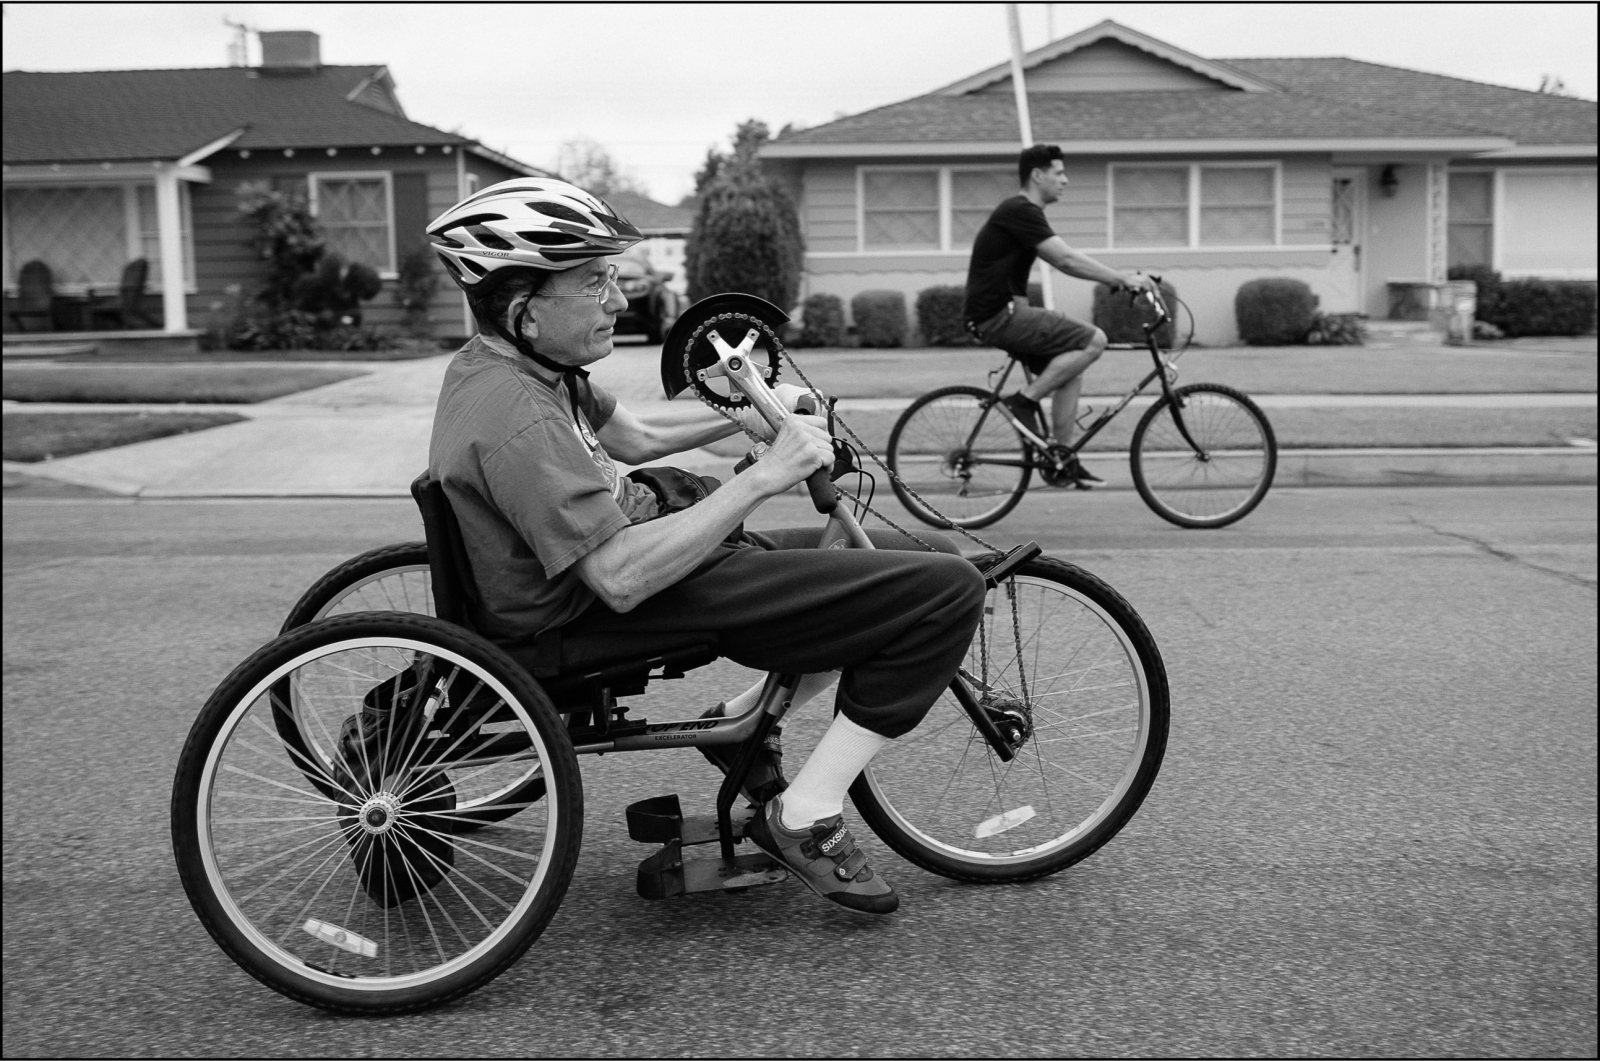 Arthur Blaser rides his tricycle with Isaac R. Larios around his neighborhood on Wednesday, July 22, 2015. Larios assists Blaser every weekday; they meet every morning at 6:40AM to exercise.